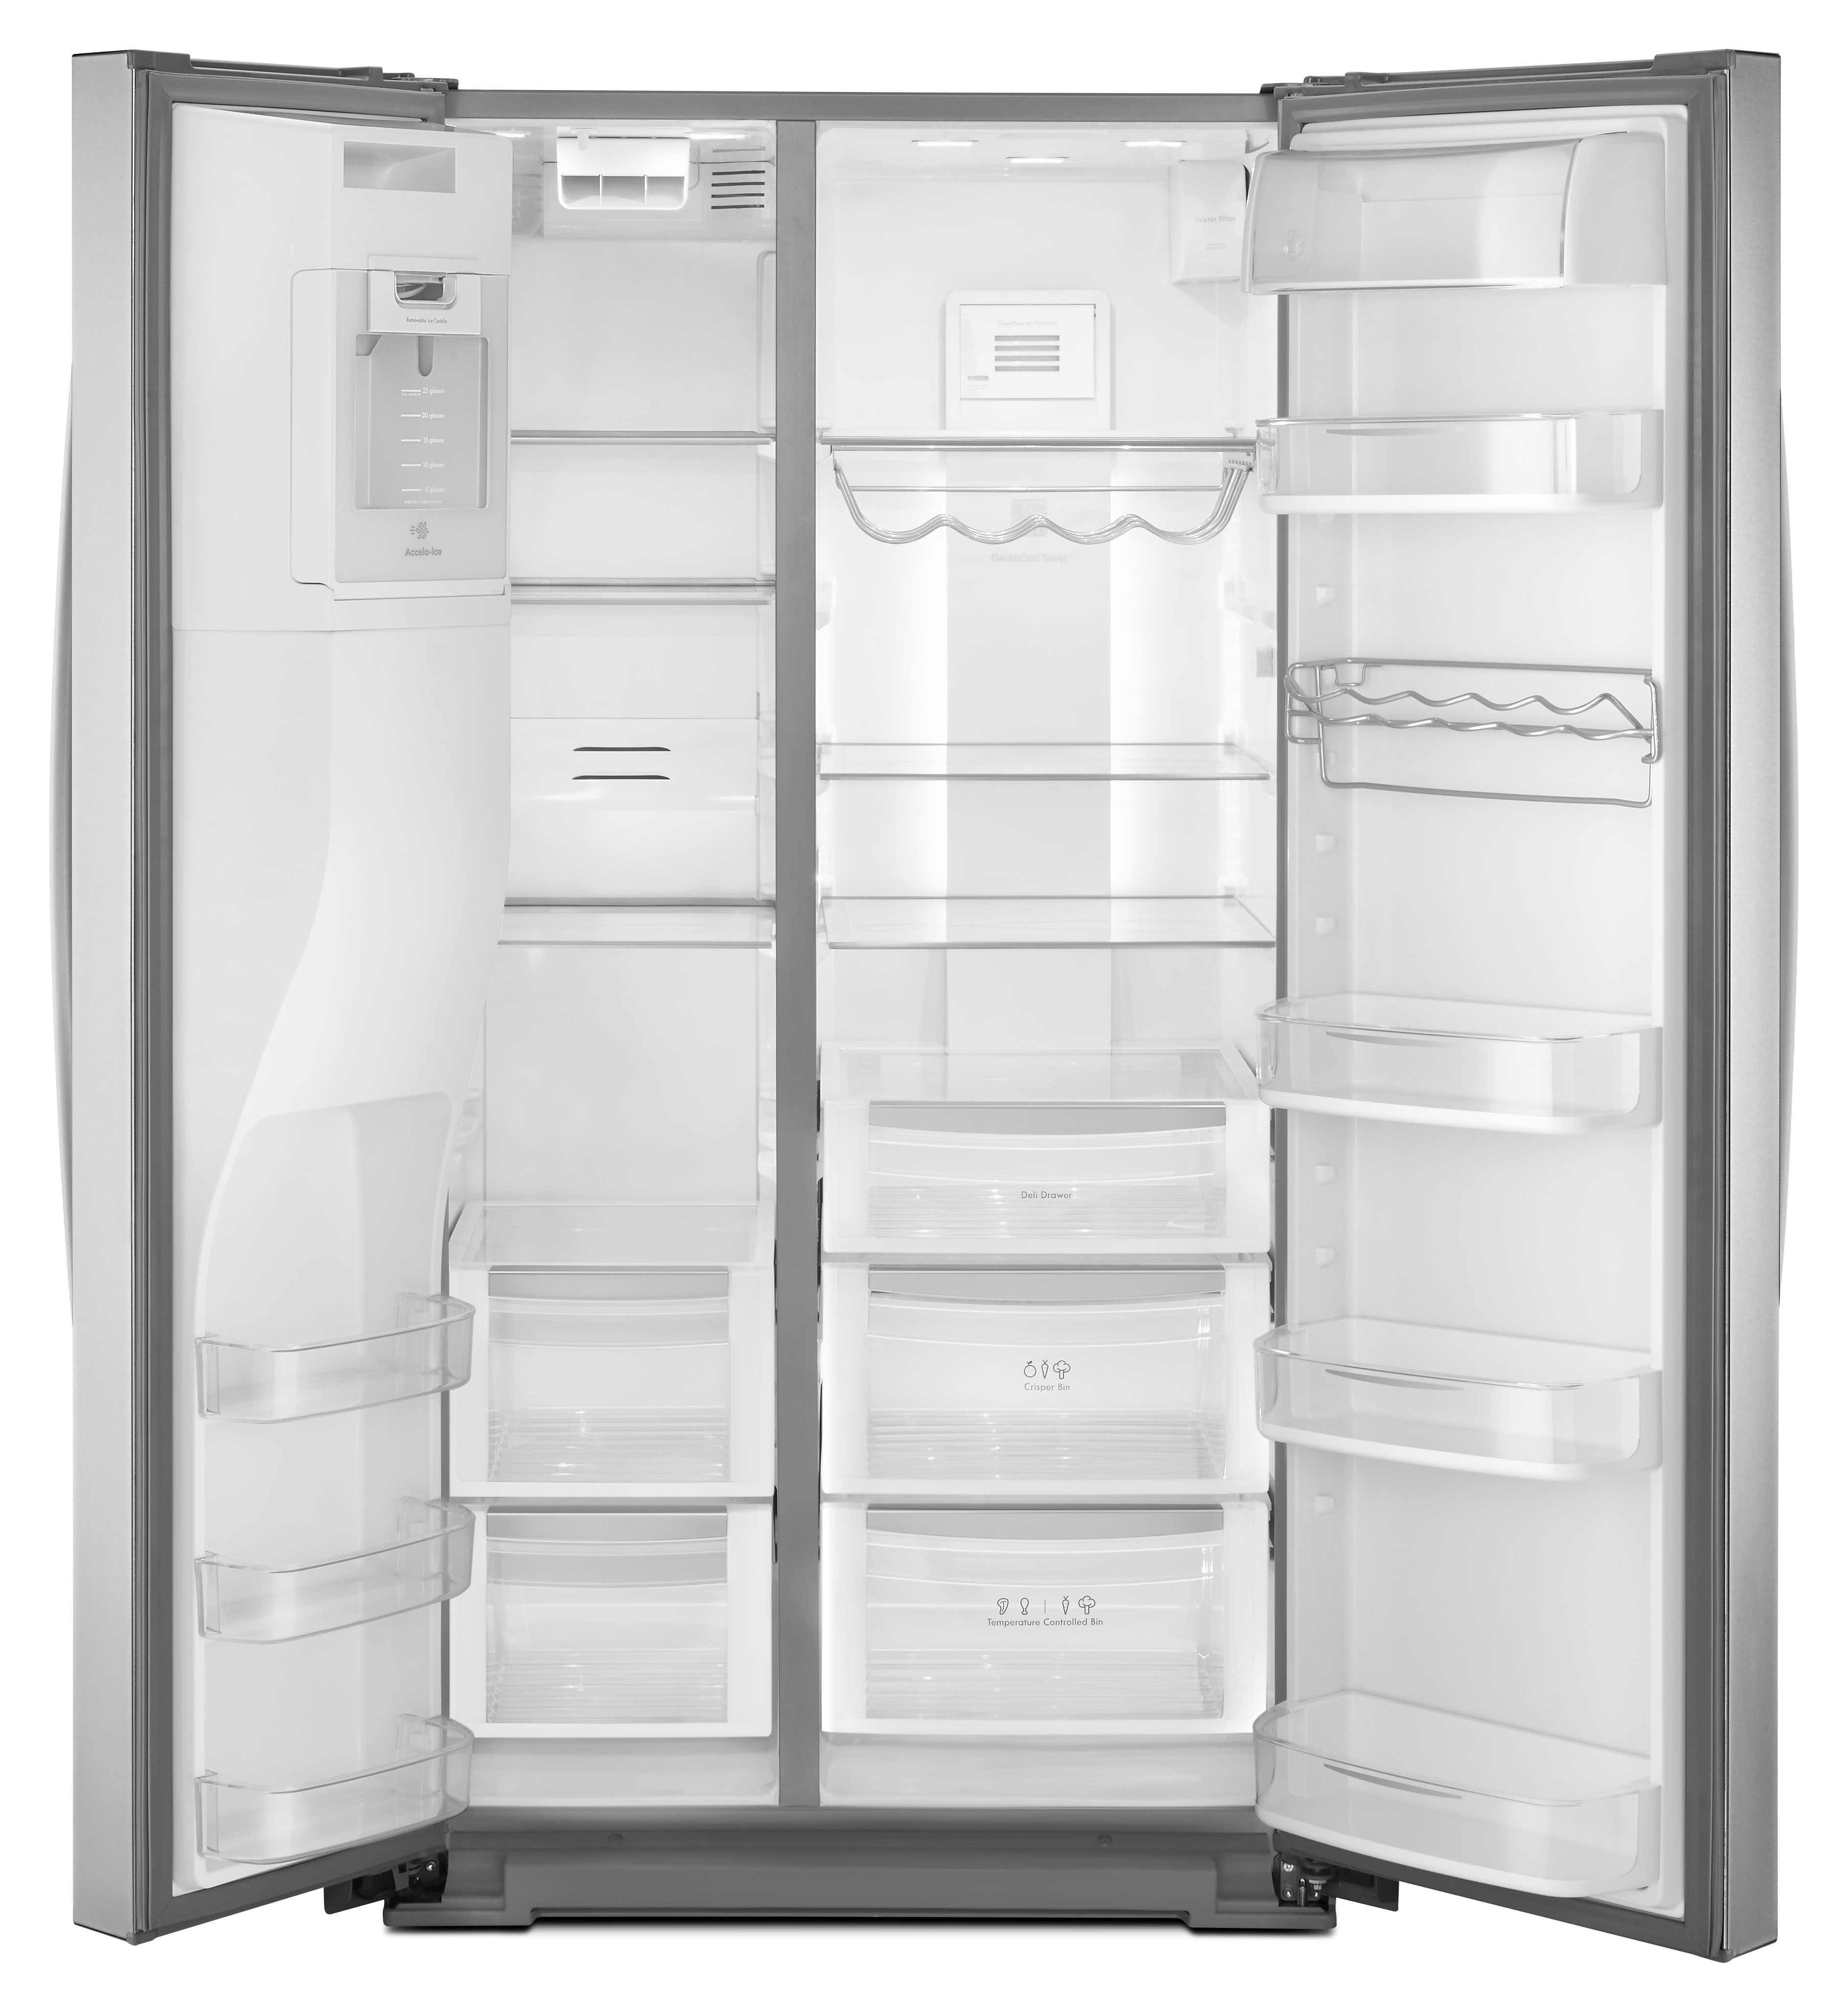 Kenmore Elite 51773 28 cu. ft. Side-by-Side Refrigerator - Stainless Steel